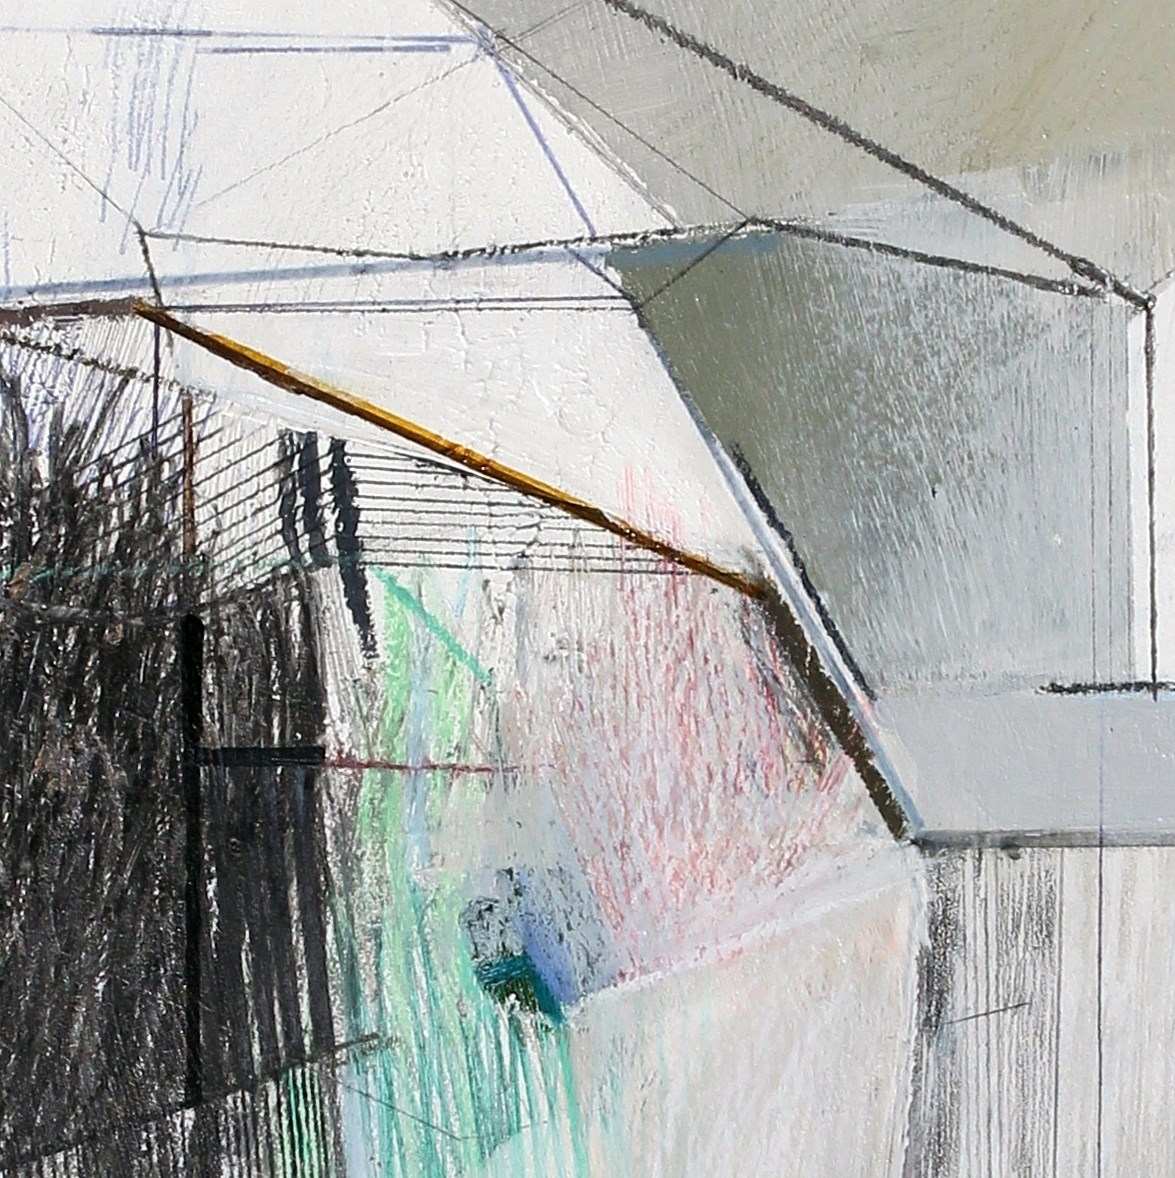 Susana Chasse, painter at zet gallery